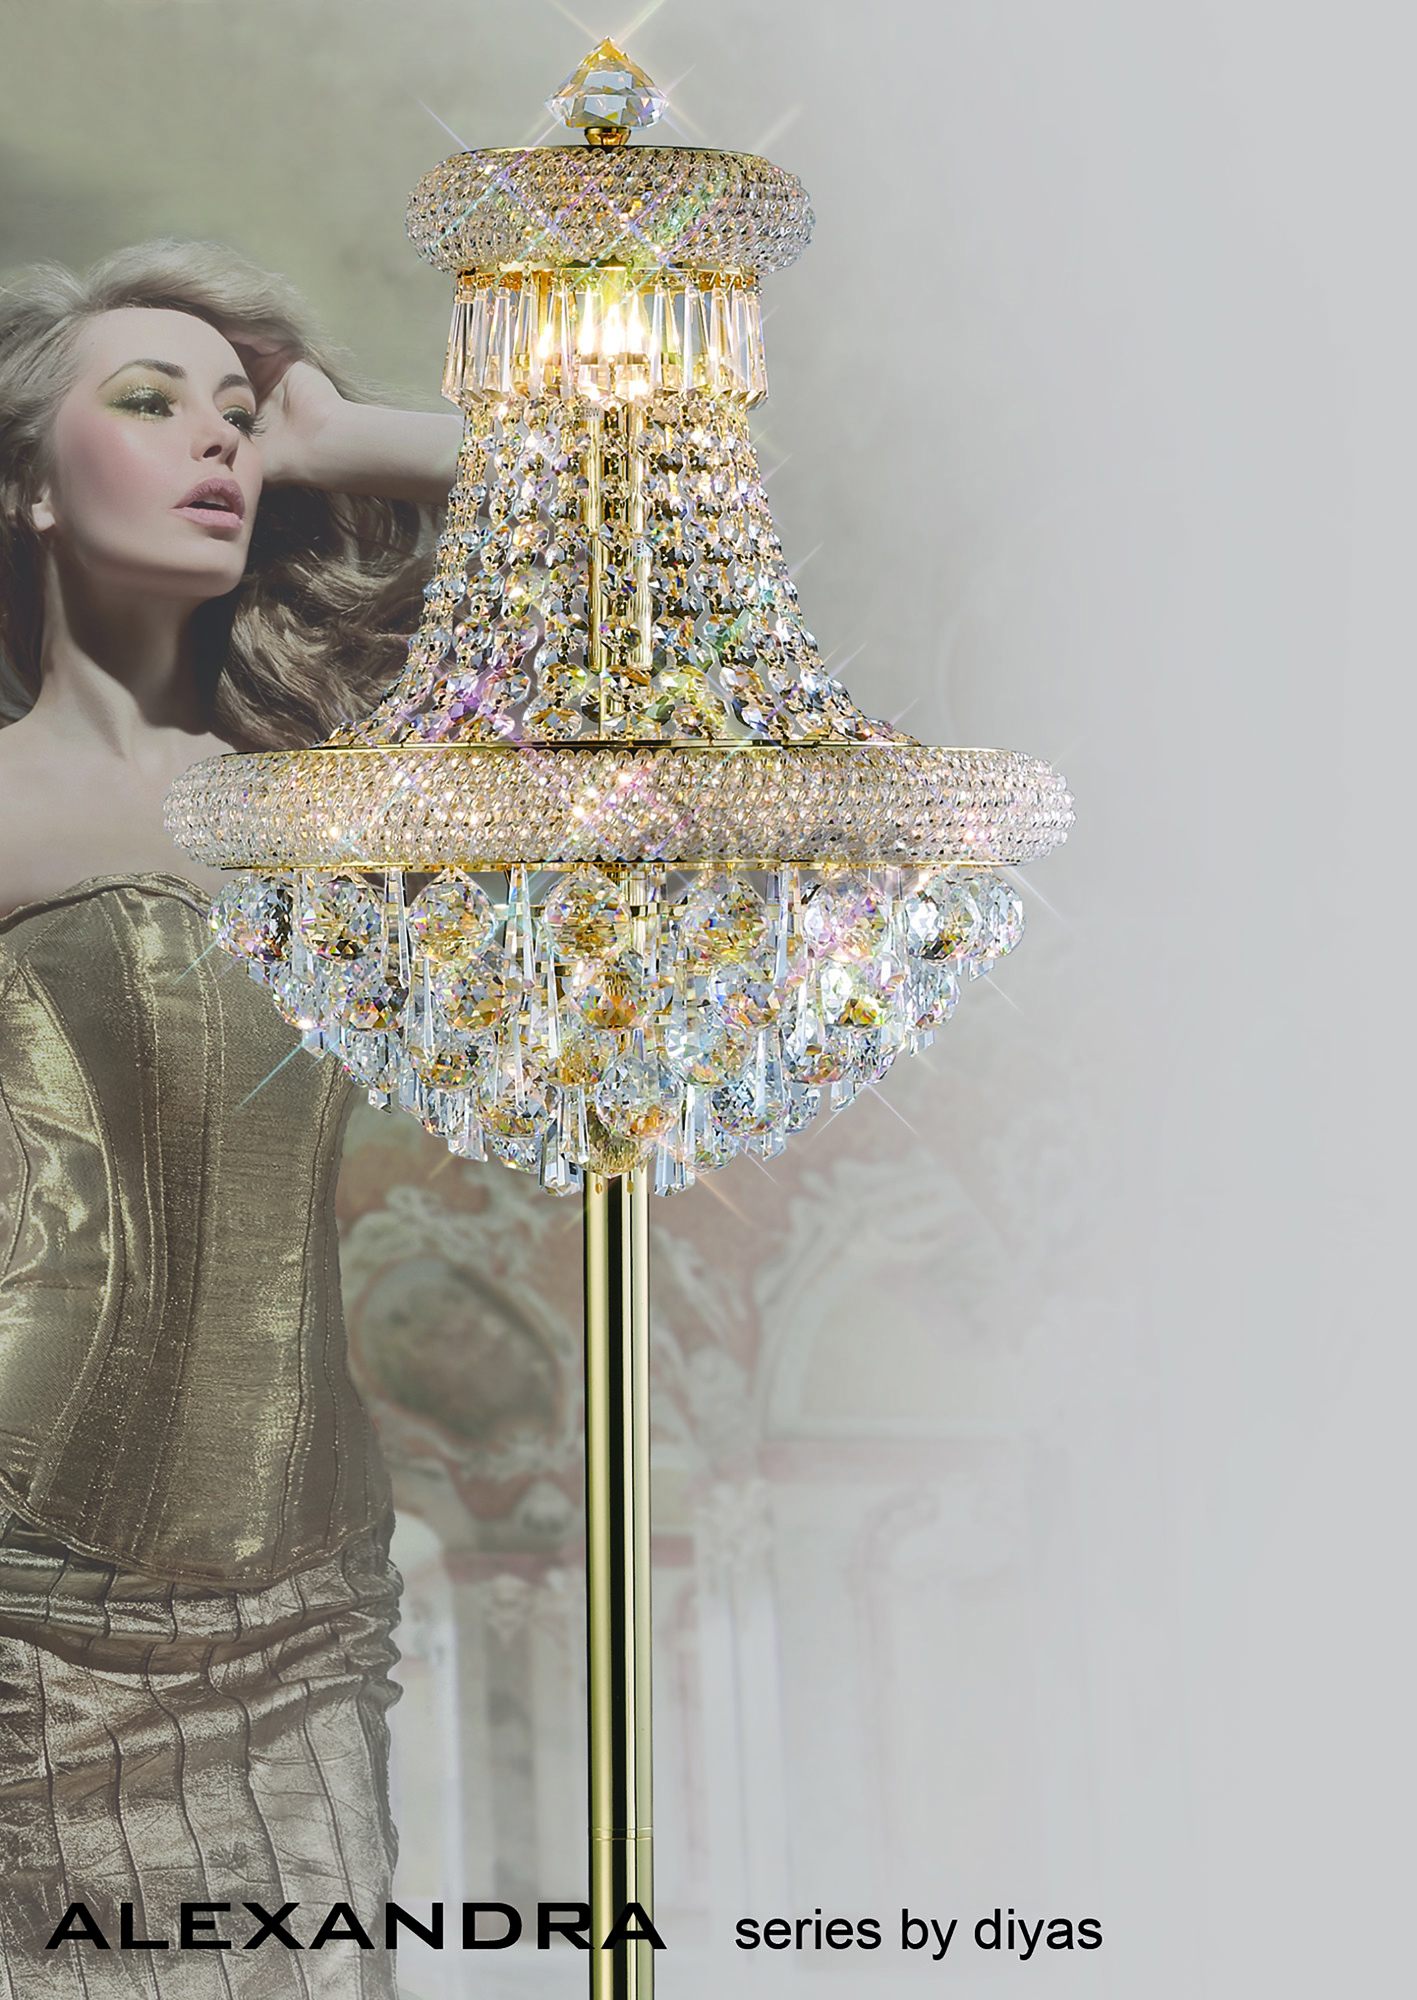 Alexandra Crystal Table Lamps Diyas Traditional Crystal Table Lamps